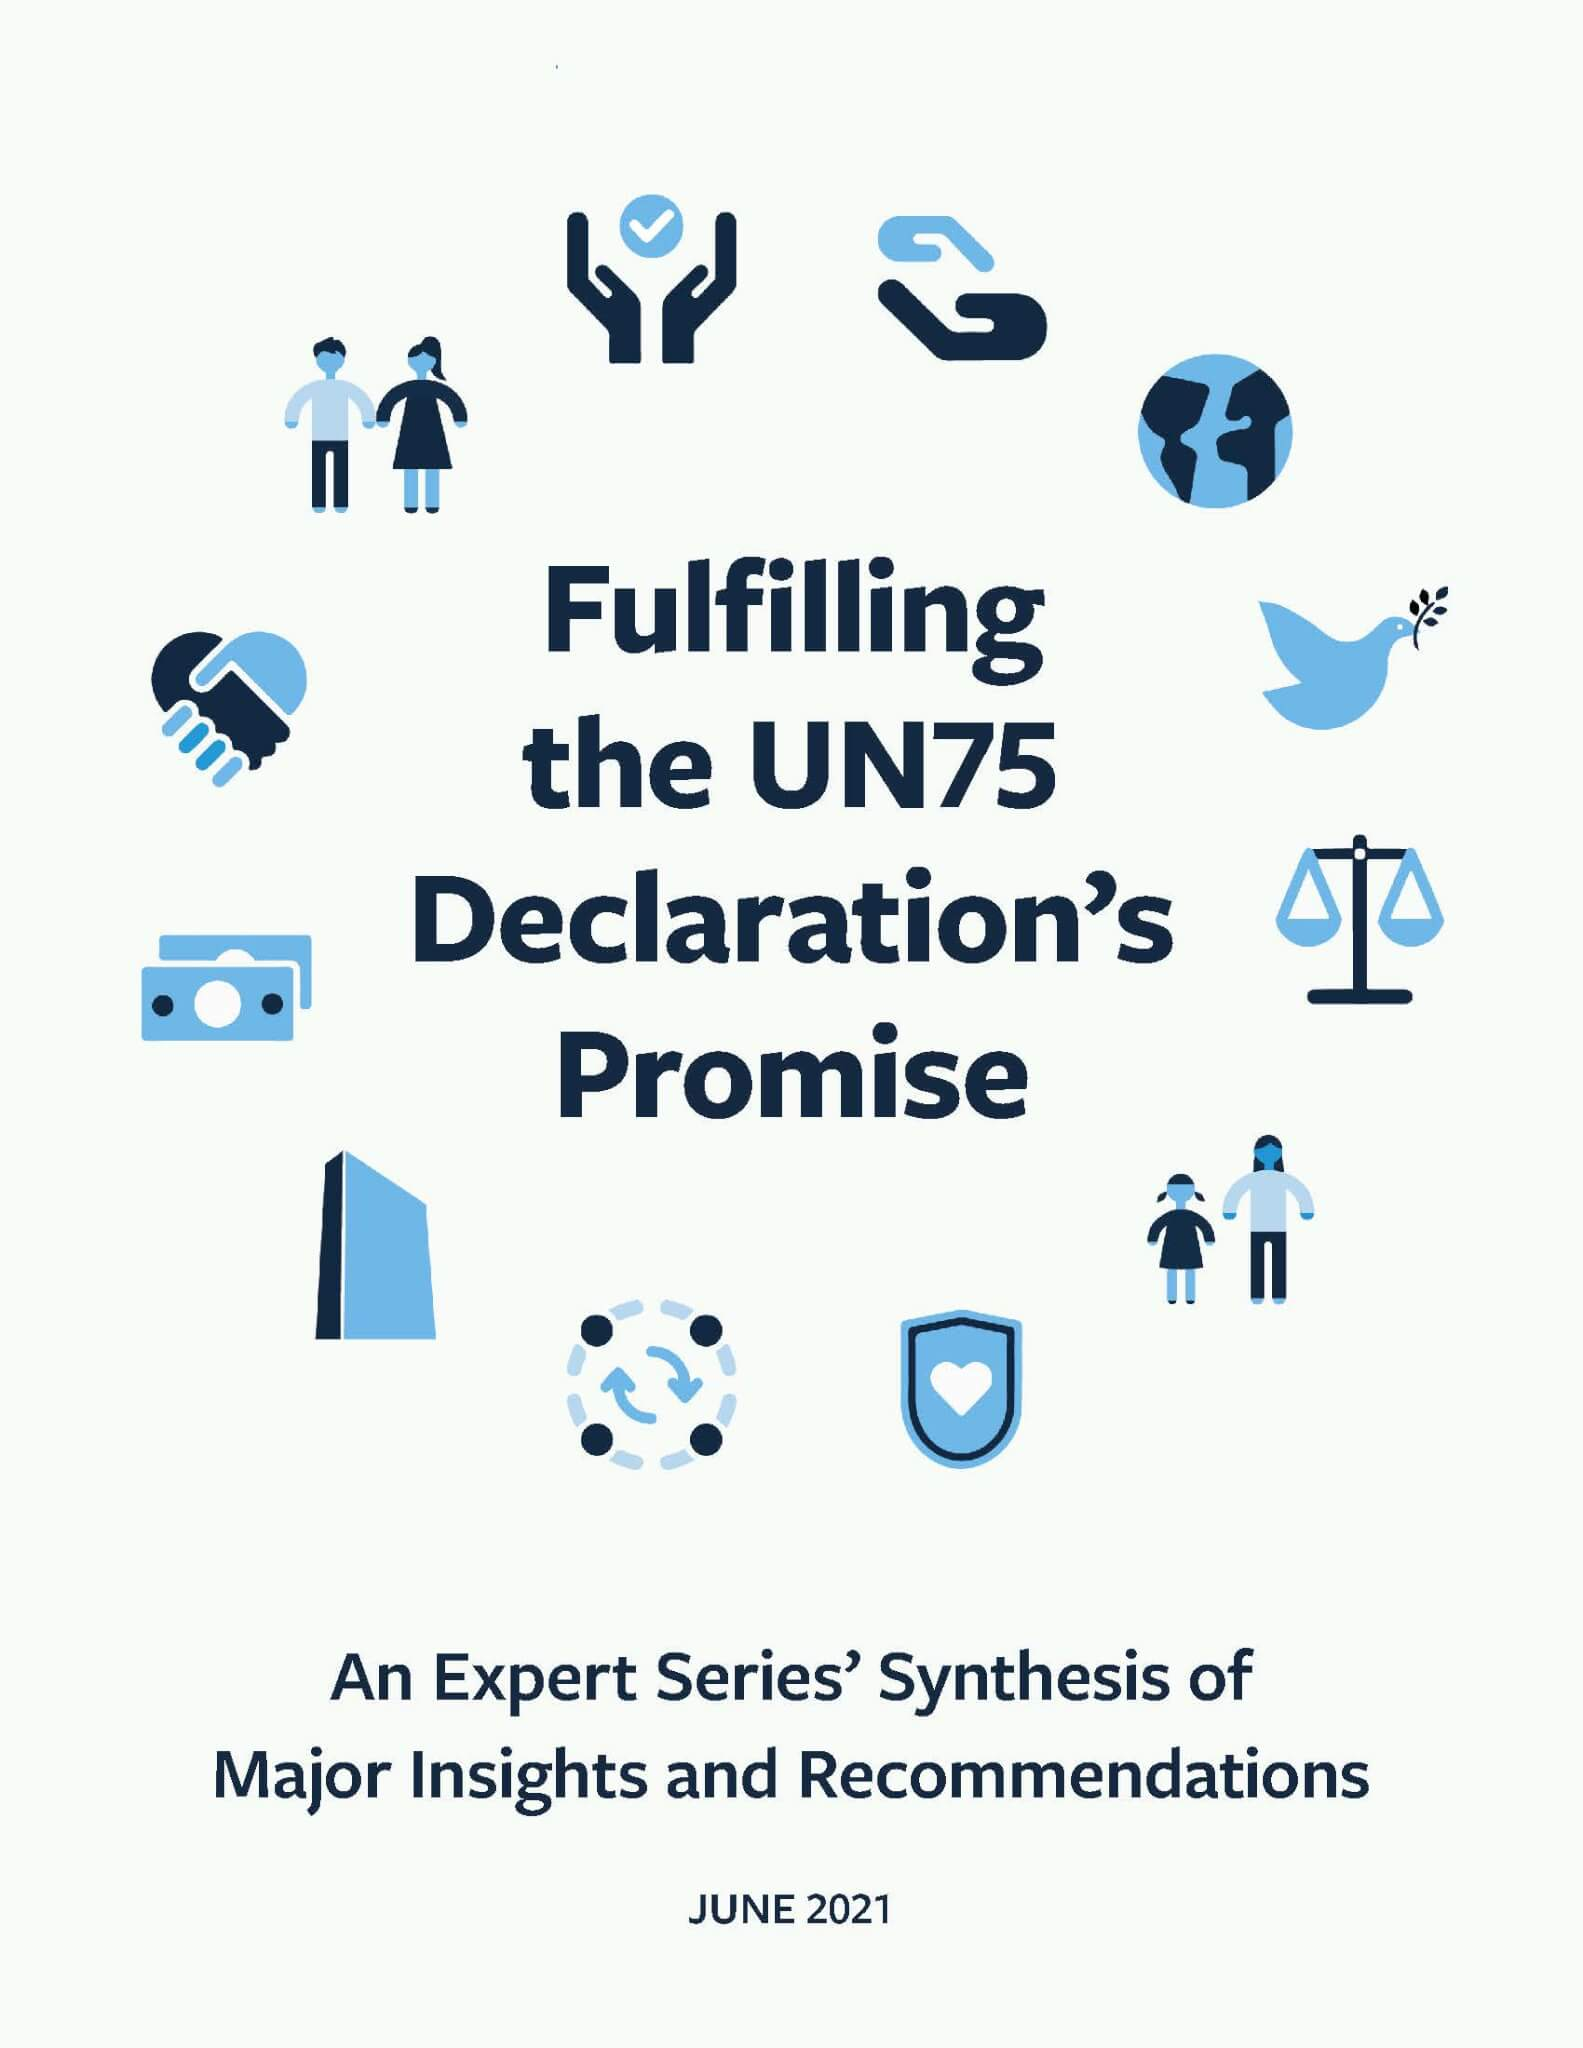 An Expert Series' Synthesis of Major Insights and Recommendations